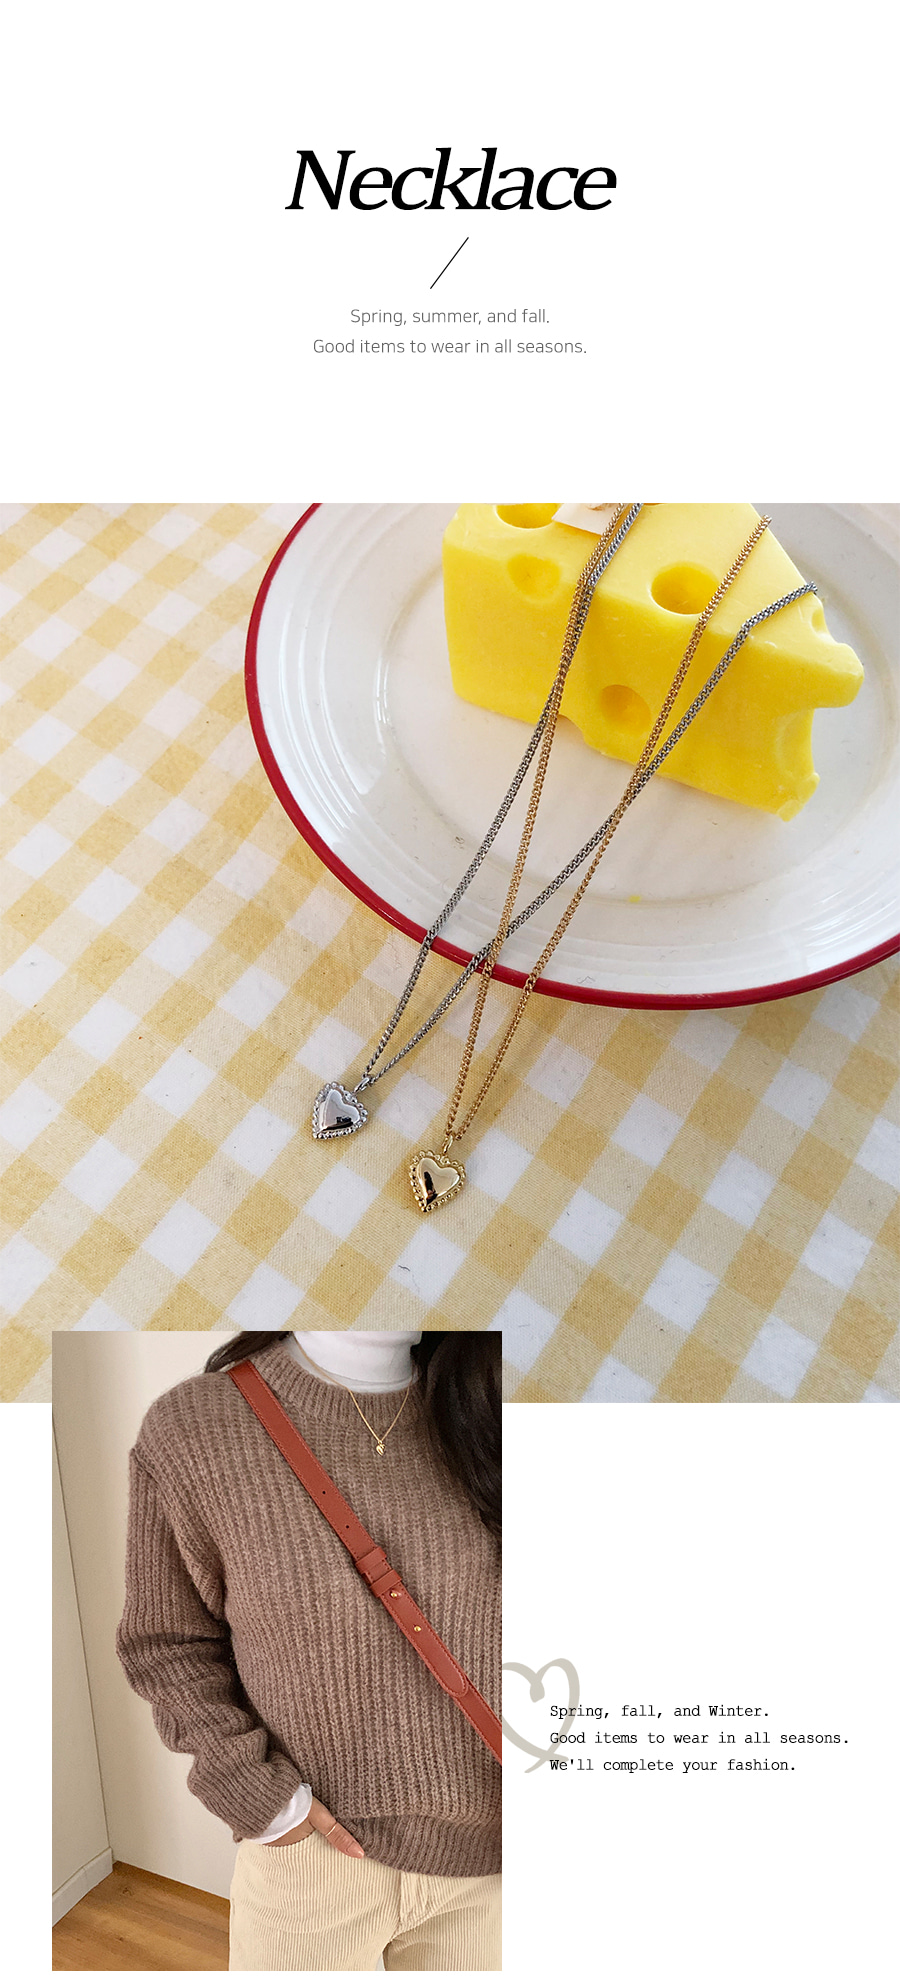 On Heart Necklace